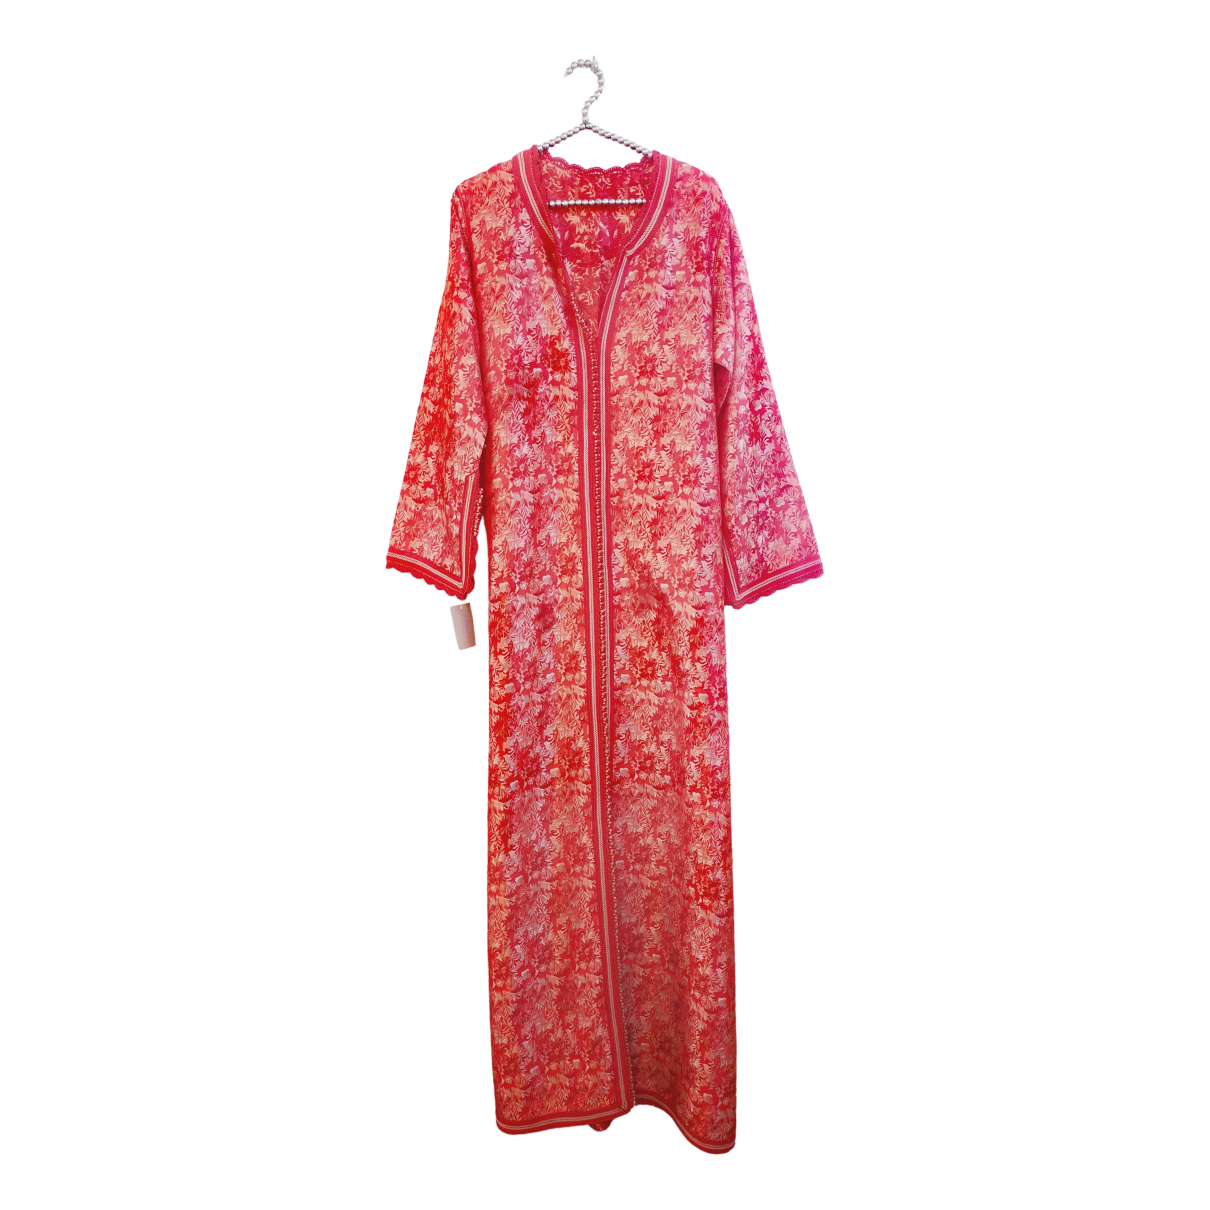 Non Signé / Unsigned \N Red dress for Women One Size FR